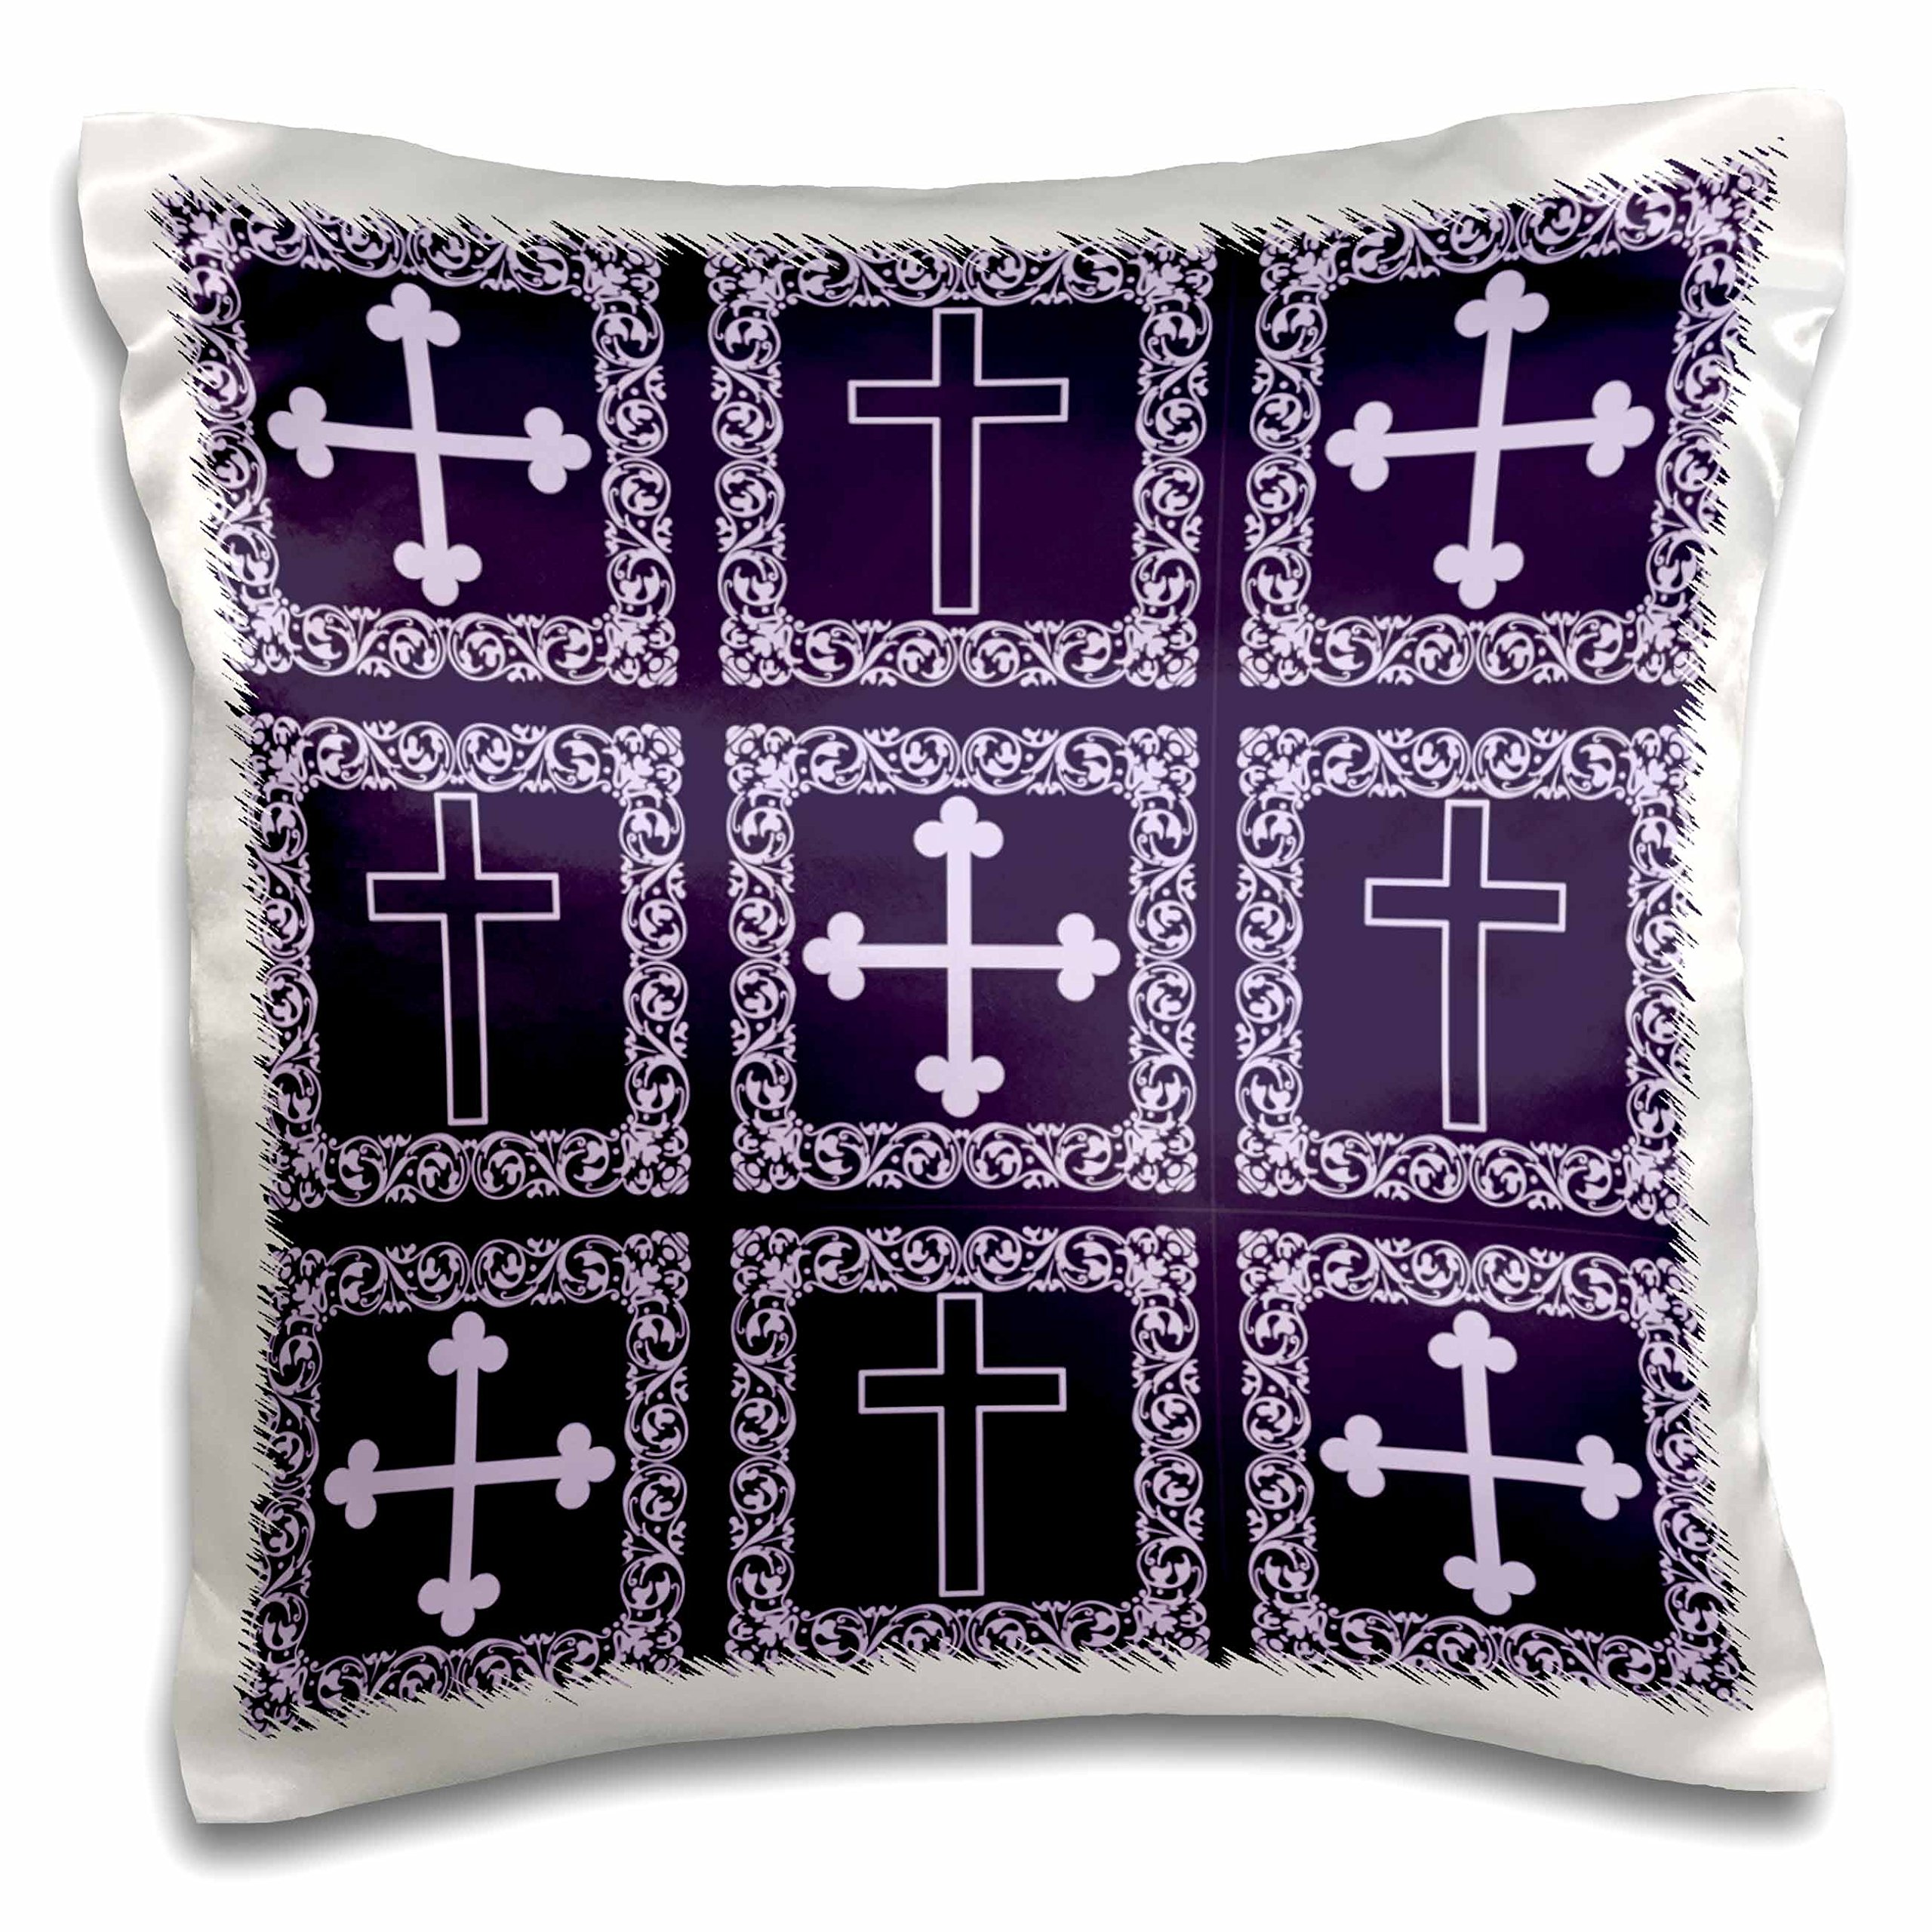 3D Rose Christian Victorian Floral Frame Standard Iron Cross in Two Purple Shades Design Pillowcase, 16'' x 16''